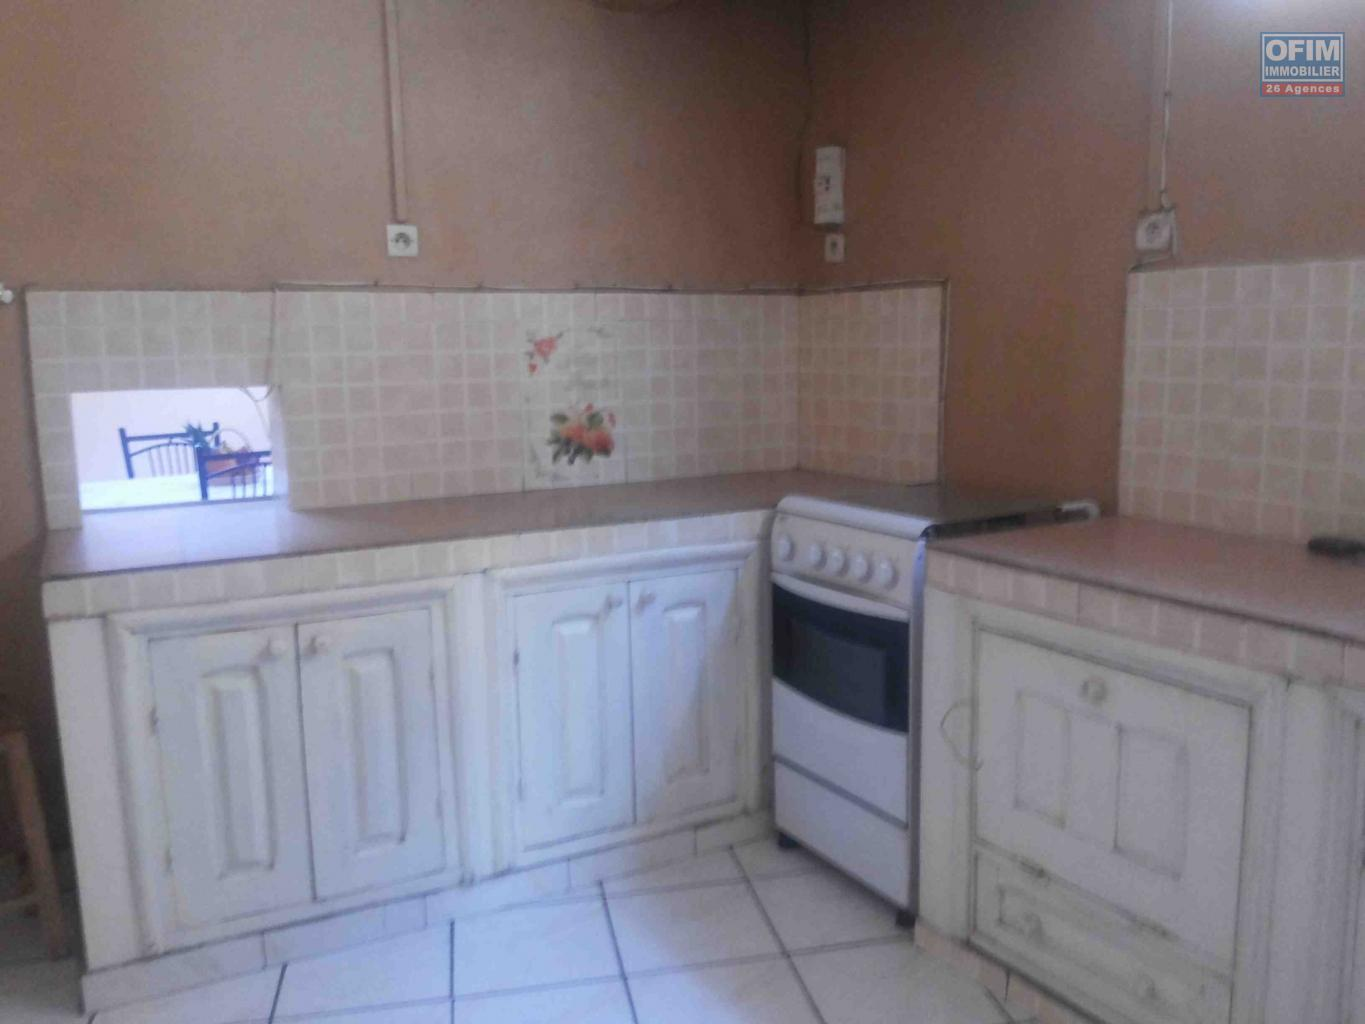 Location appartement antananarivo tananarive a louer un appartement t3 meubl - Location appartement meuble hyeres ...